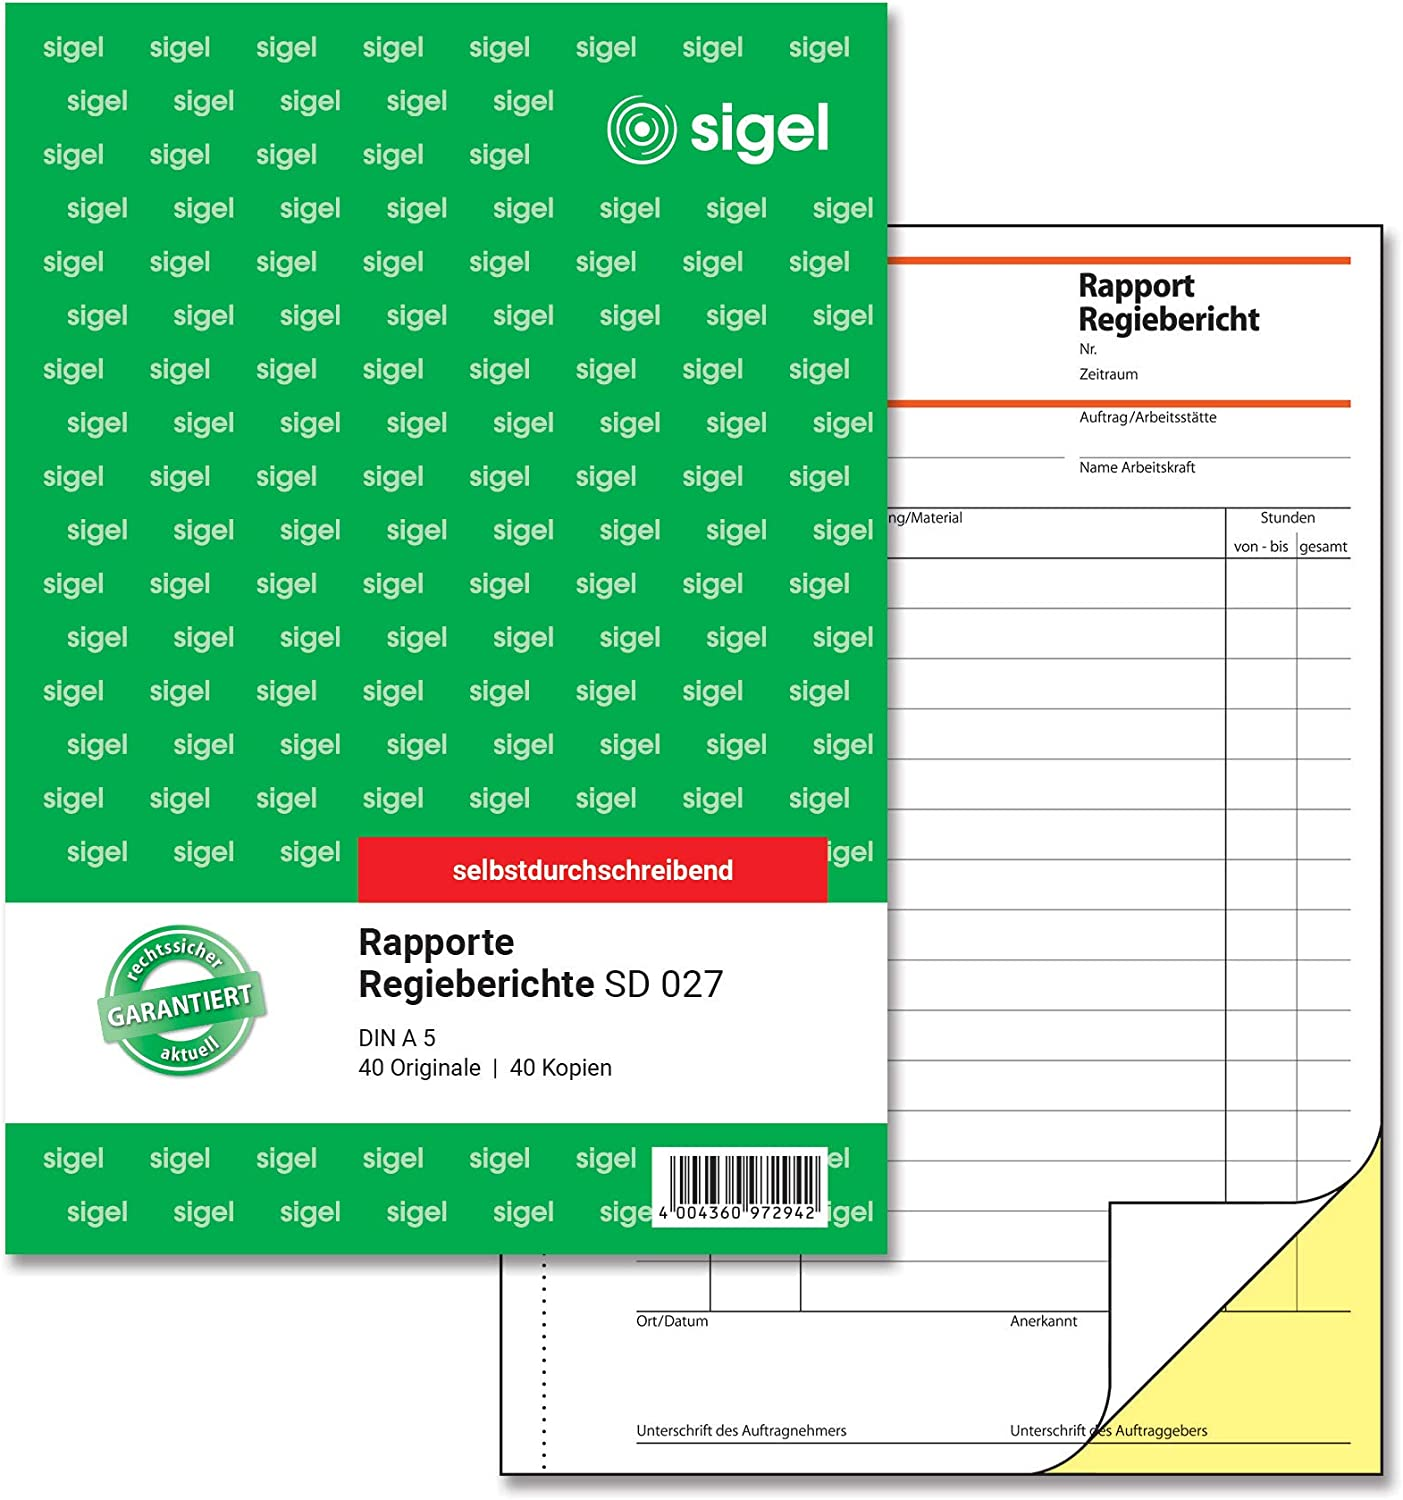 Sigel 特価キャンペーン SD027Rapport Director's Report 驚きの値段で A52x40Sheets Carbonless